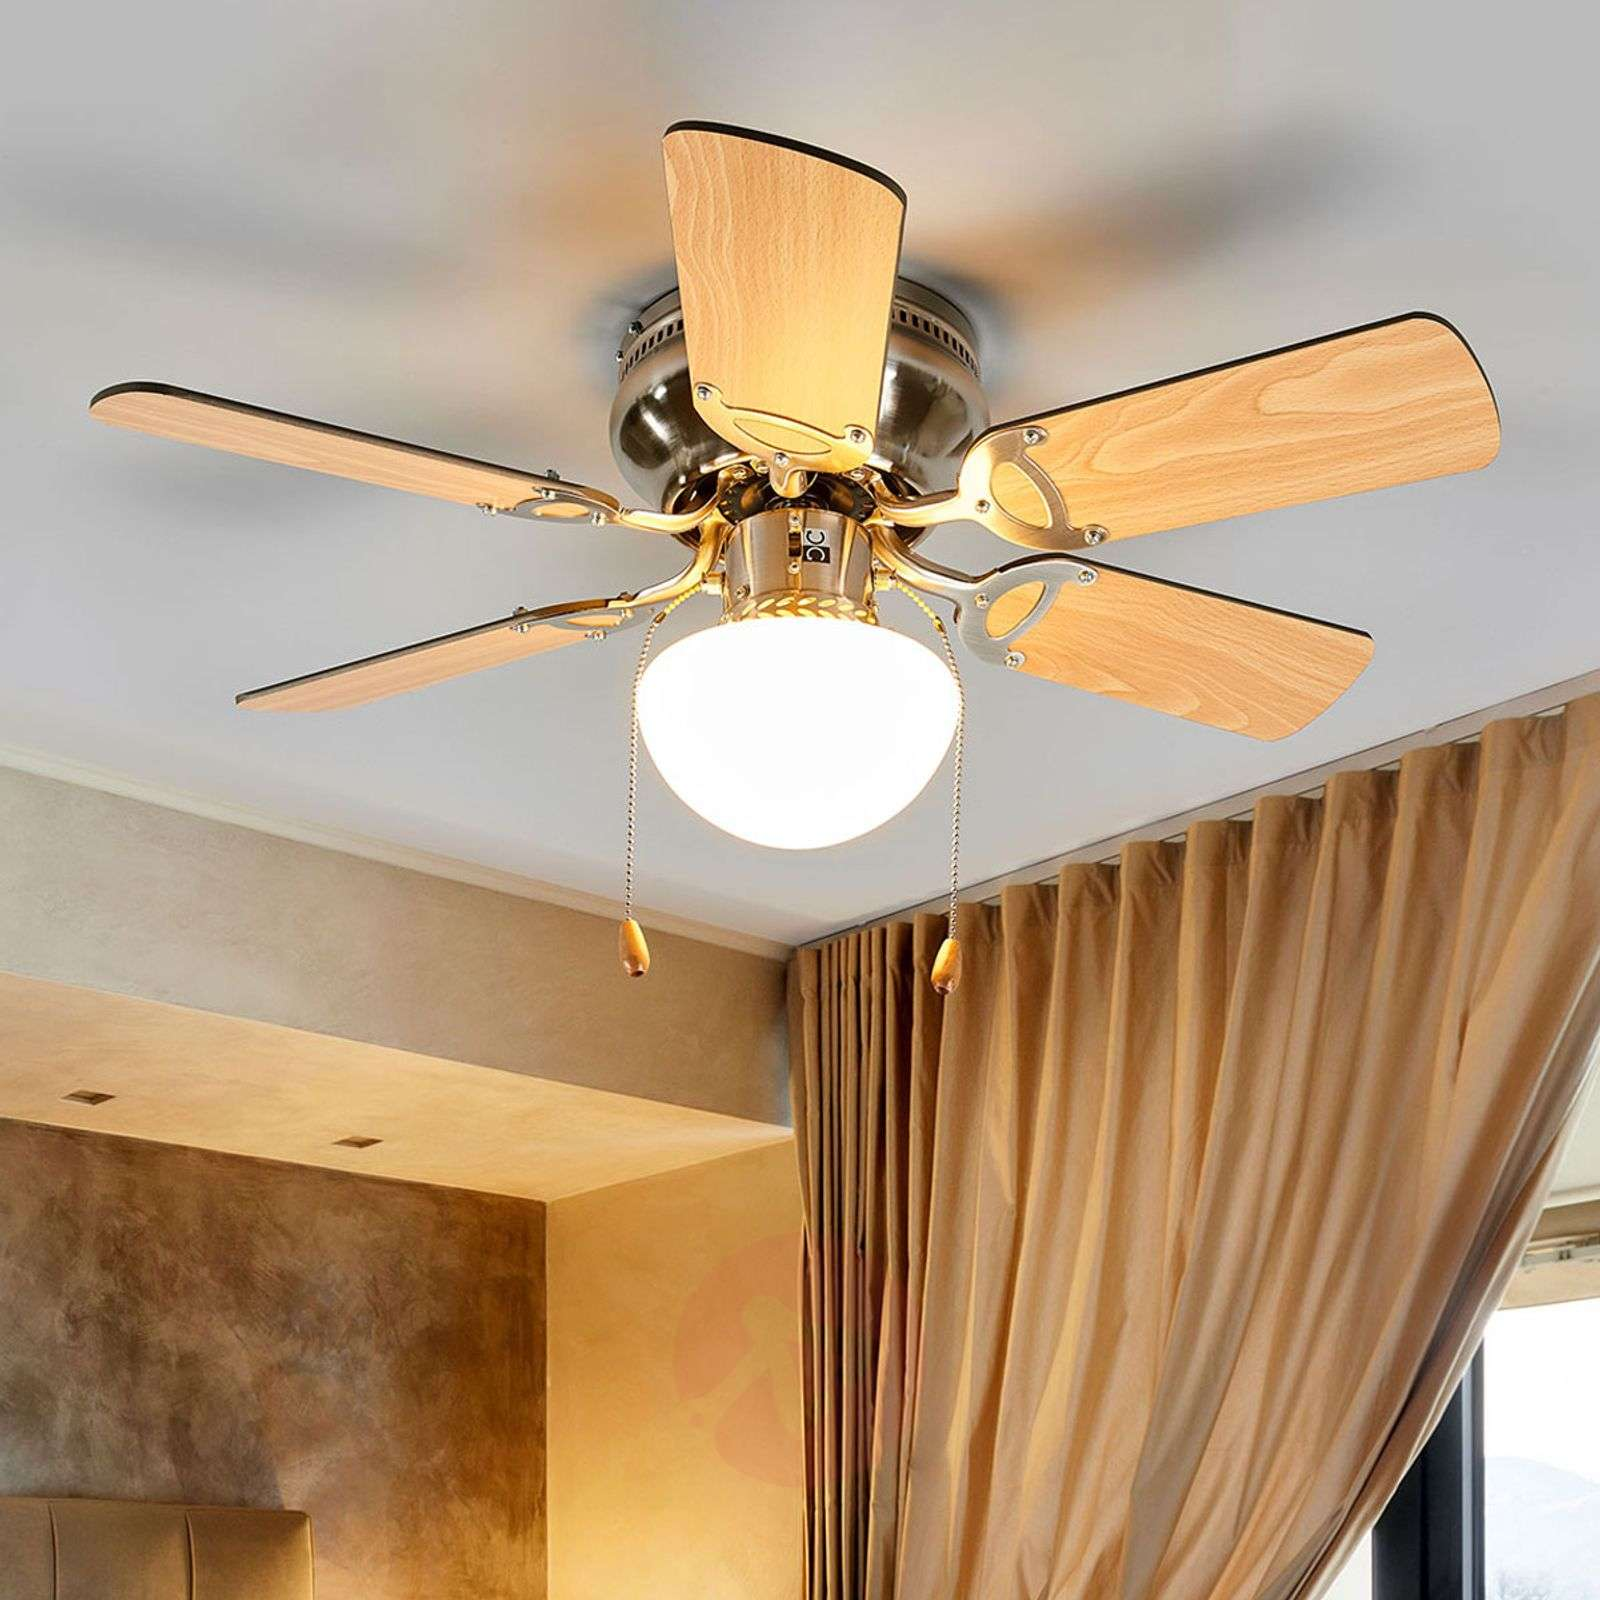 Flavio six-blade ceiling fan with light-4018095-010